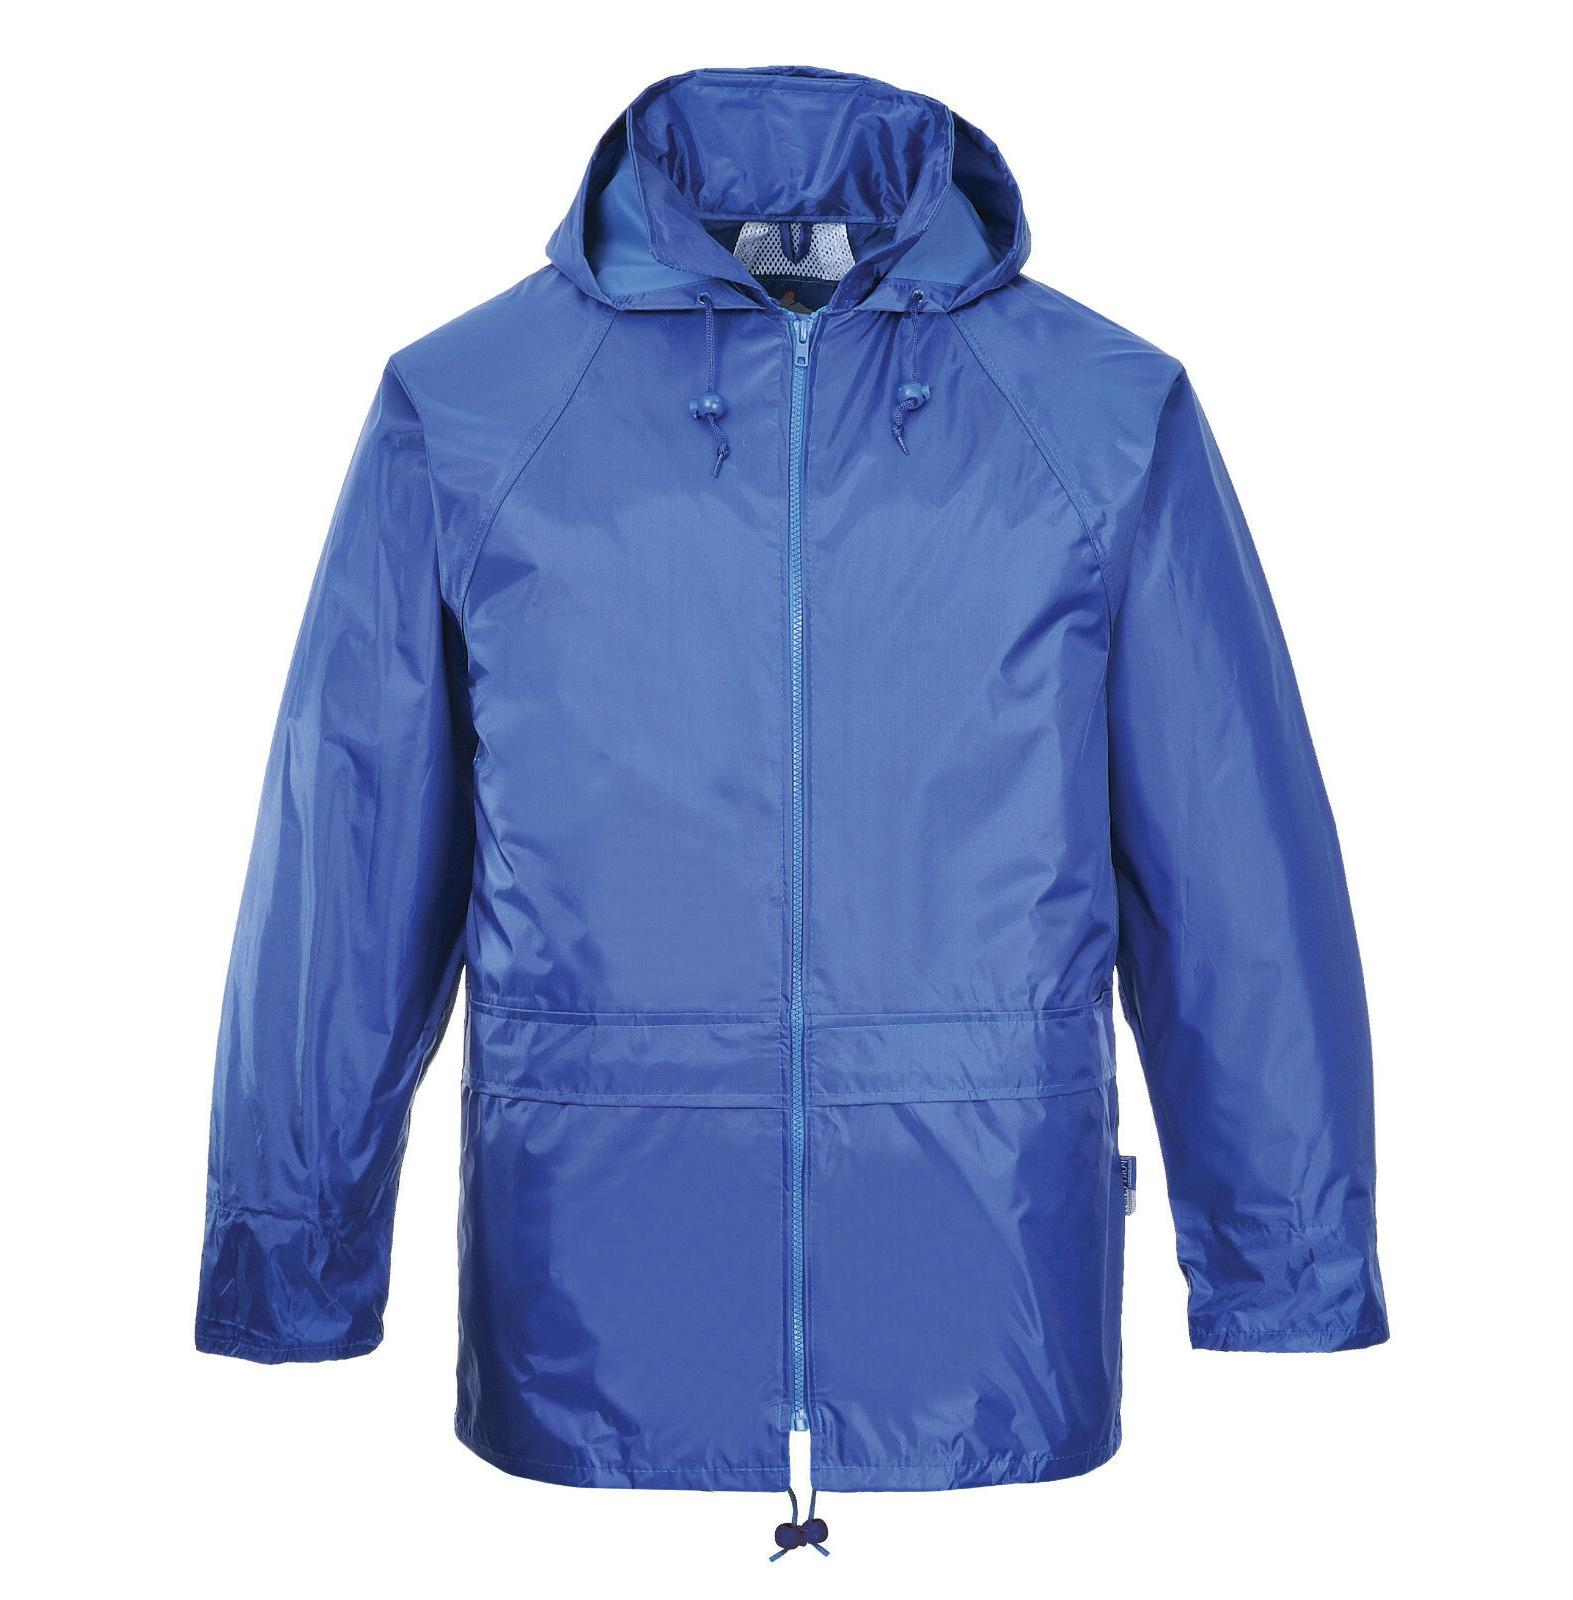 waterproof rain jacket mens womens lightweight over